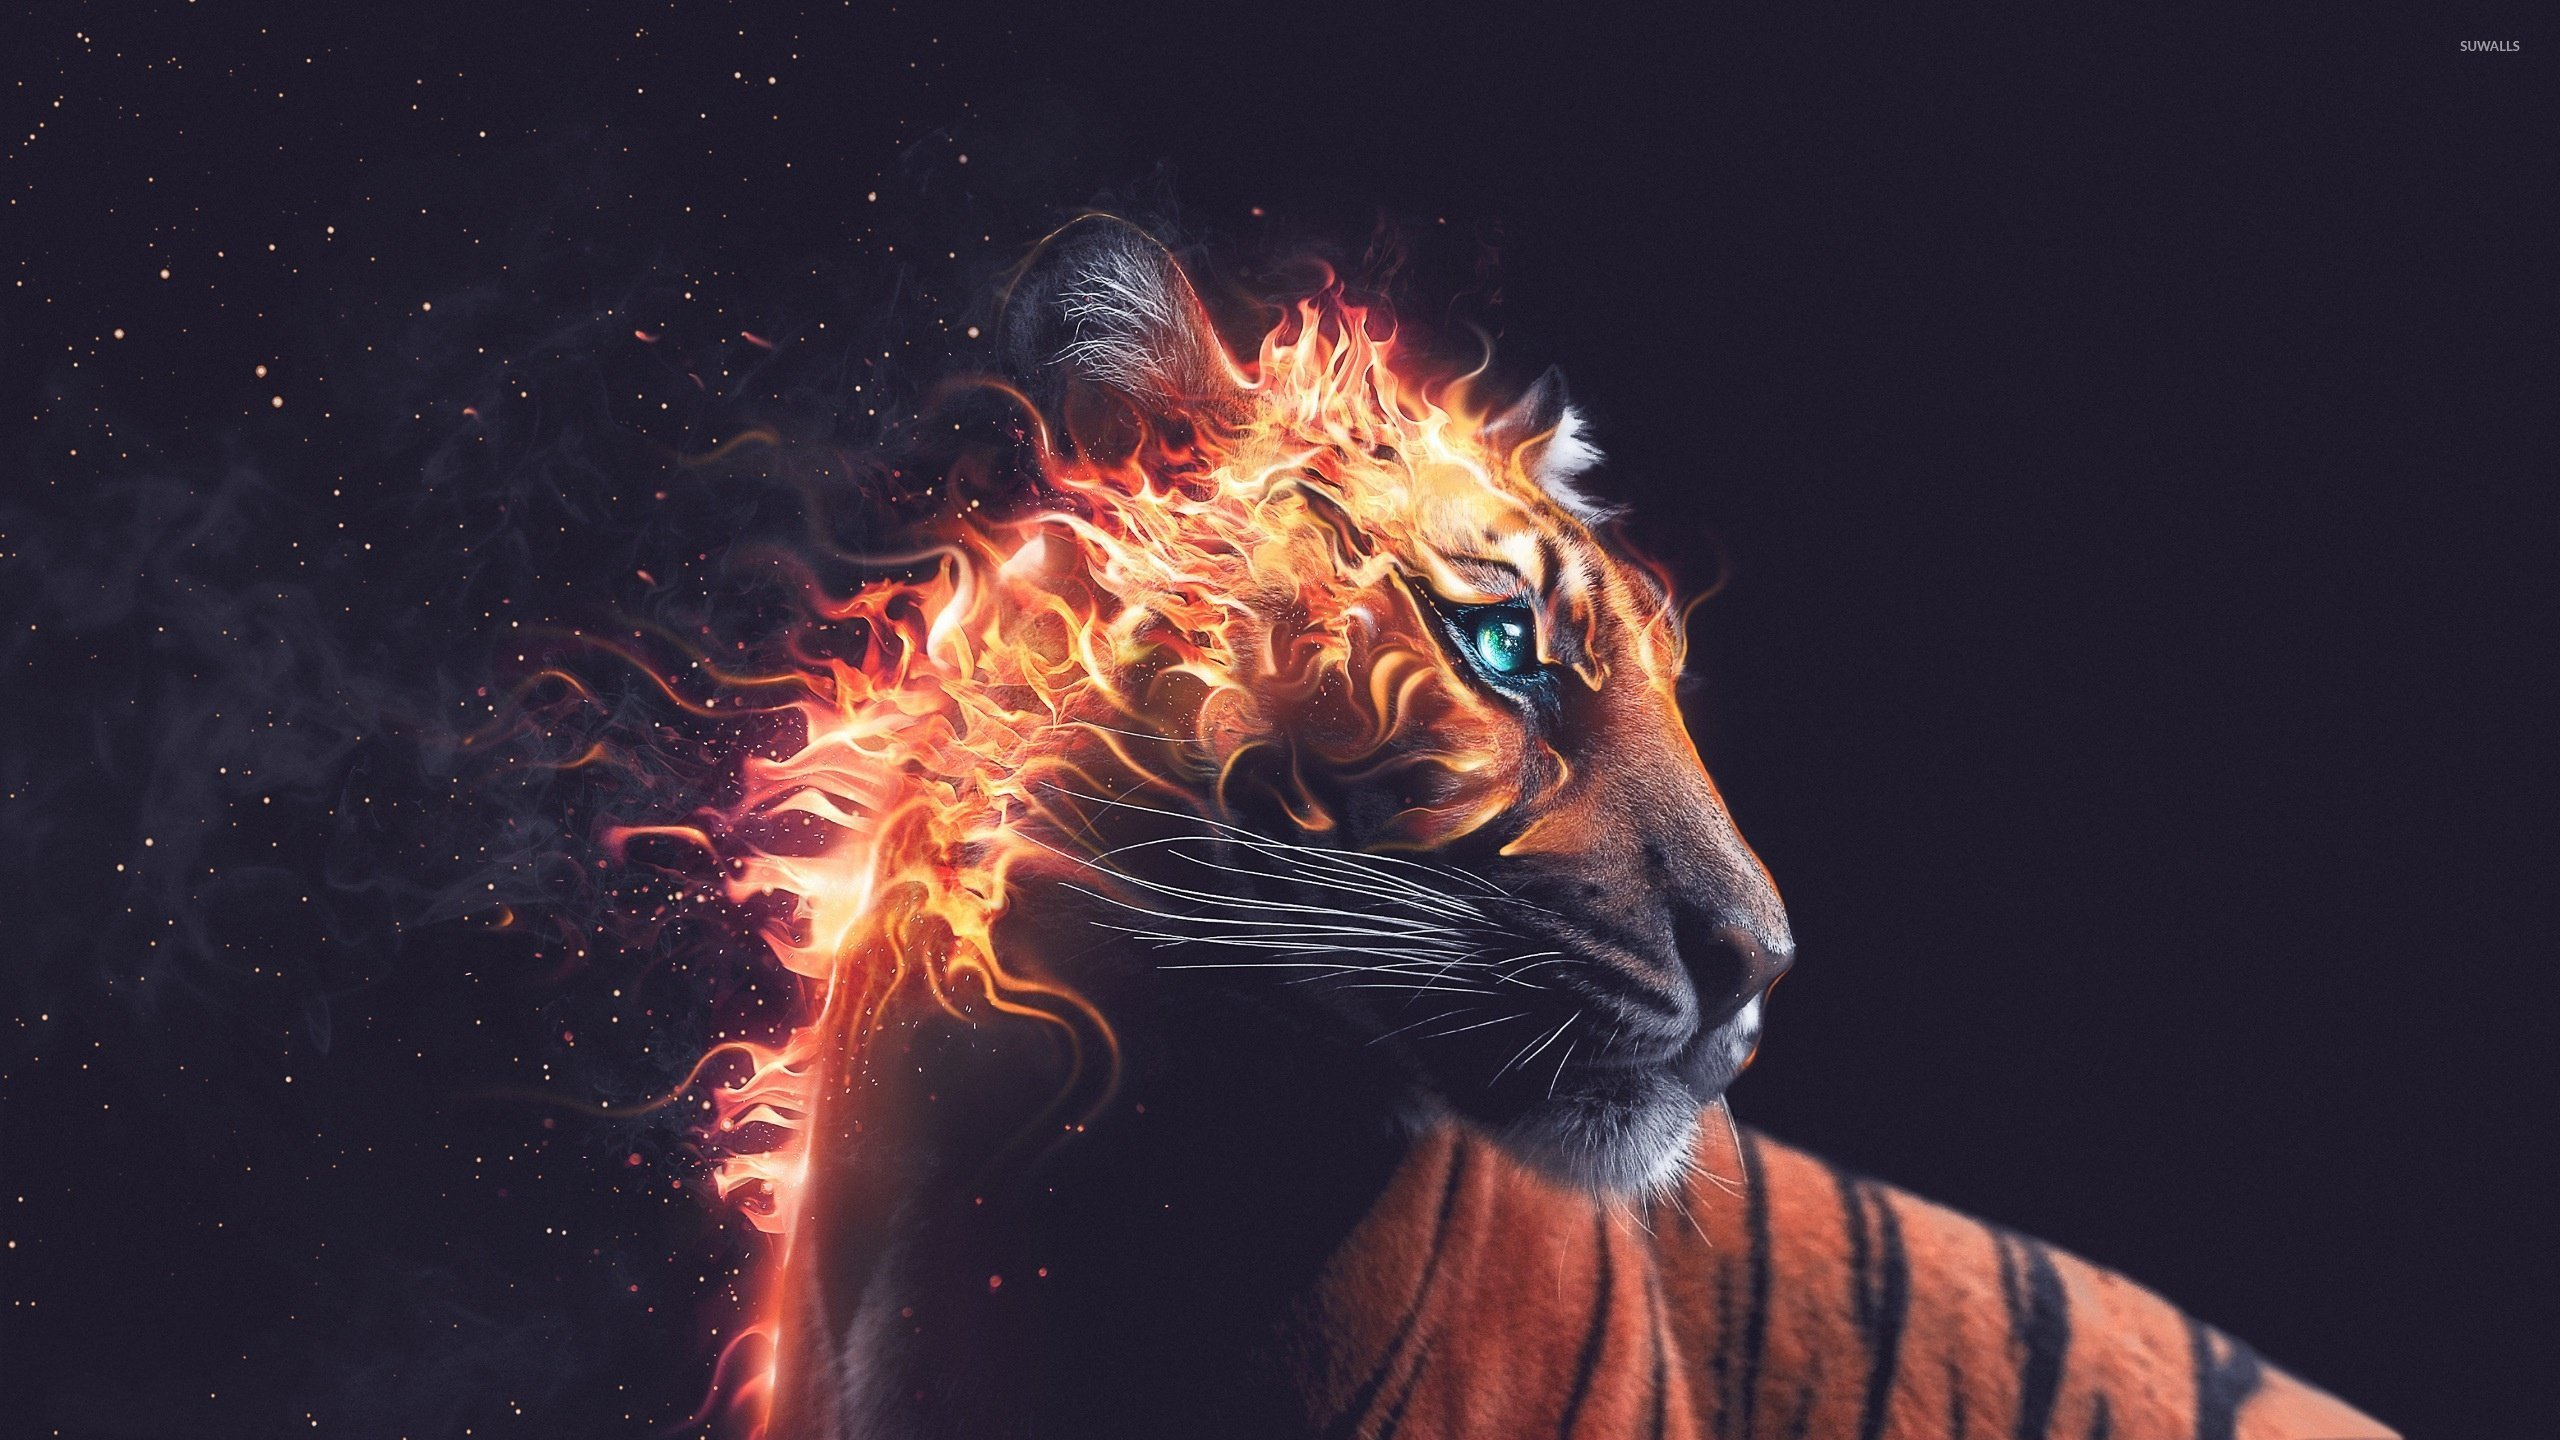 Flaming Tiger Wallpaper Artistic Wallpapers 38787